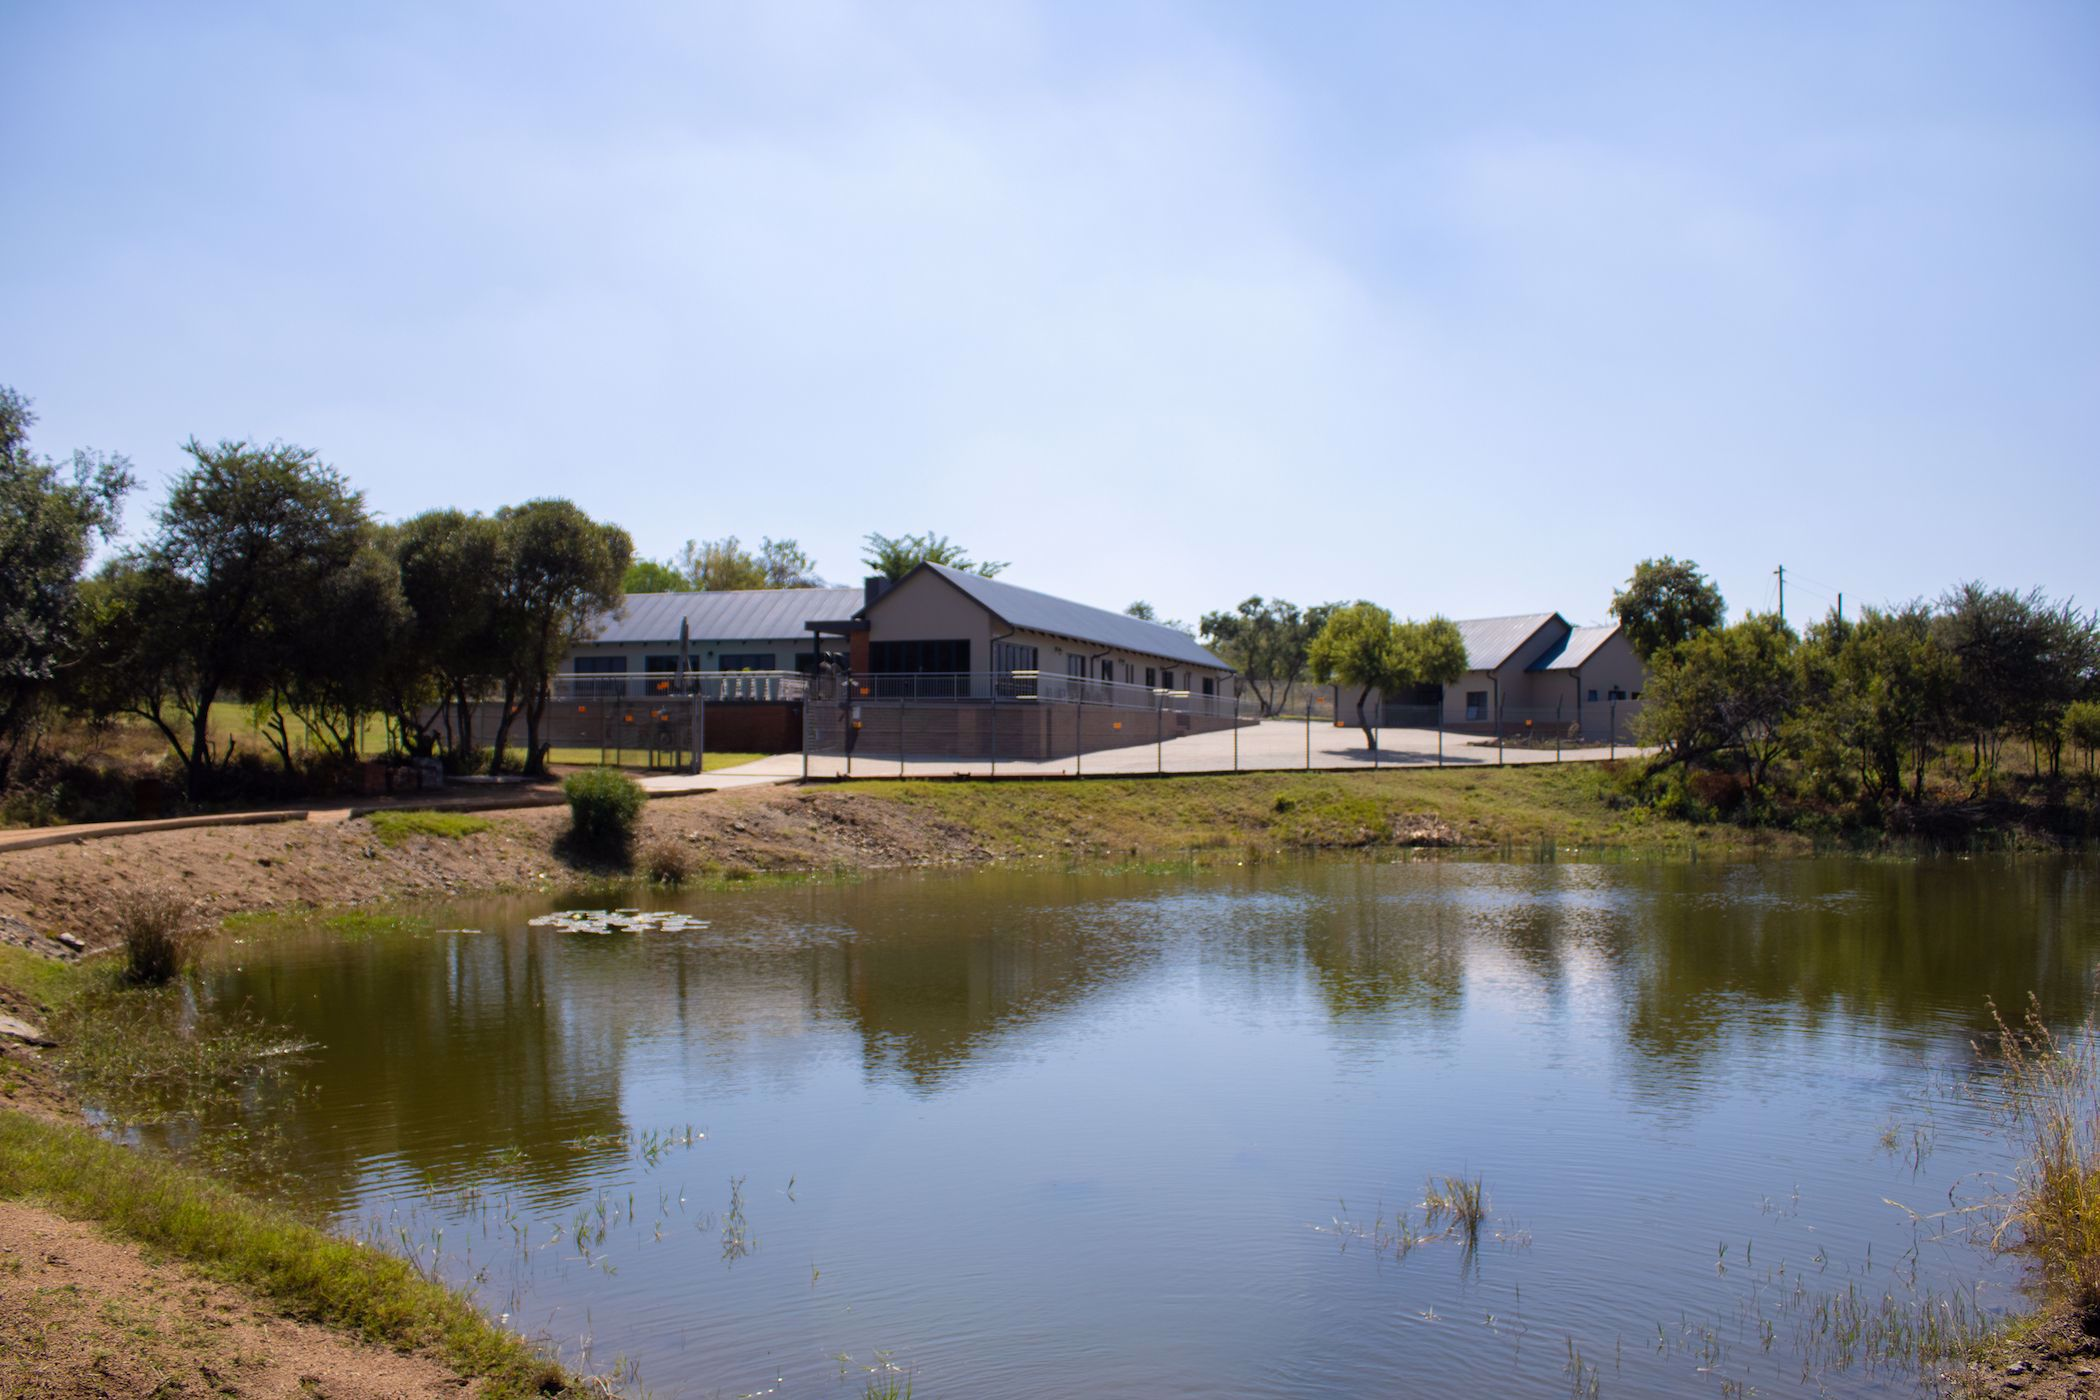 14 hectare mixed use farm for sale in Brits